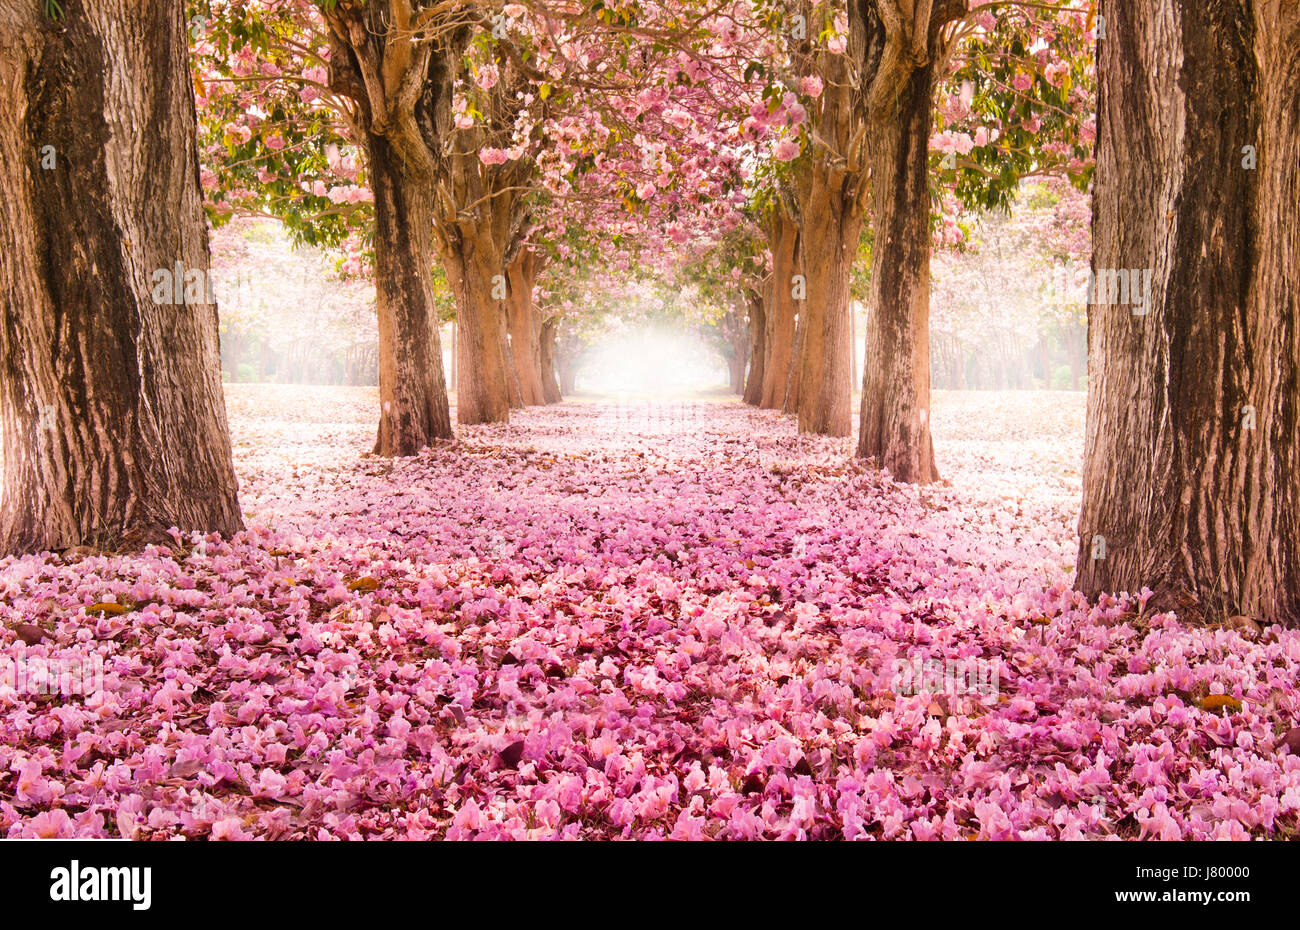 Sakura Falling Live Wallpaper Downloads Falling Petal Over The Romantic Tunnel Of Pink Flower